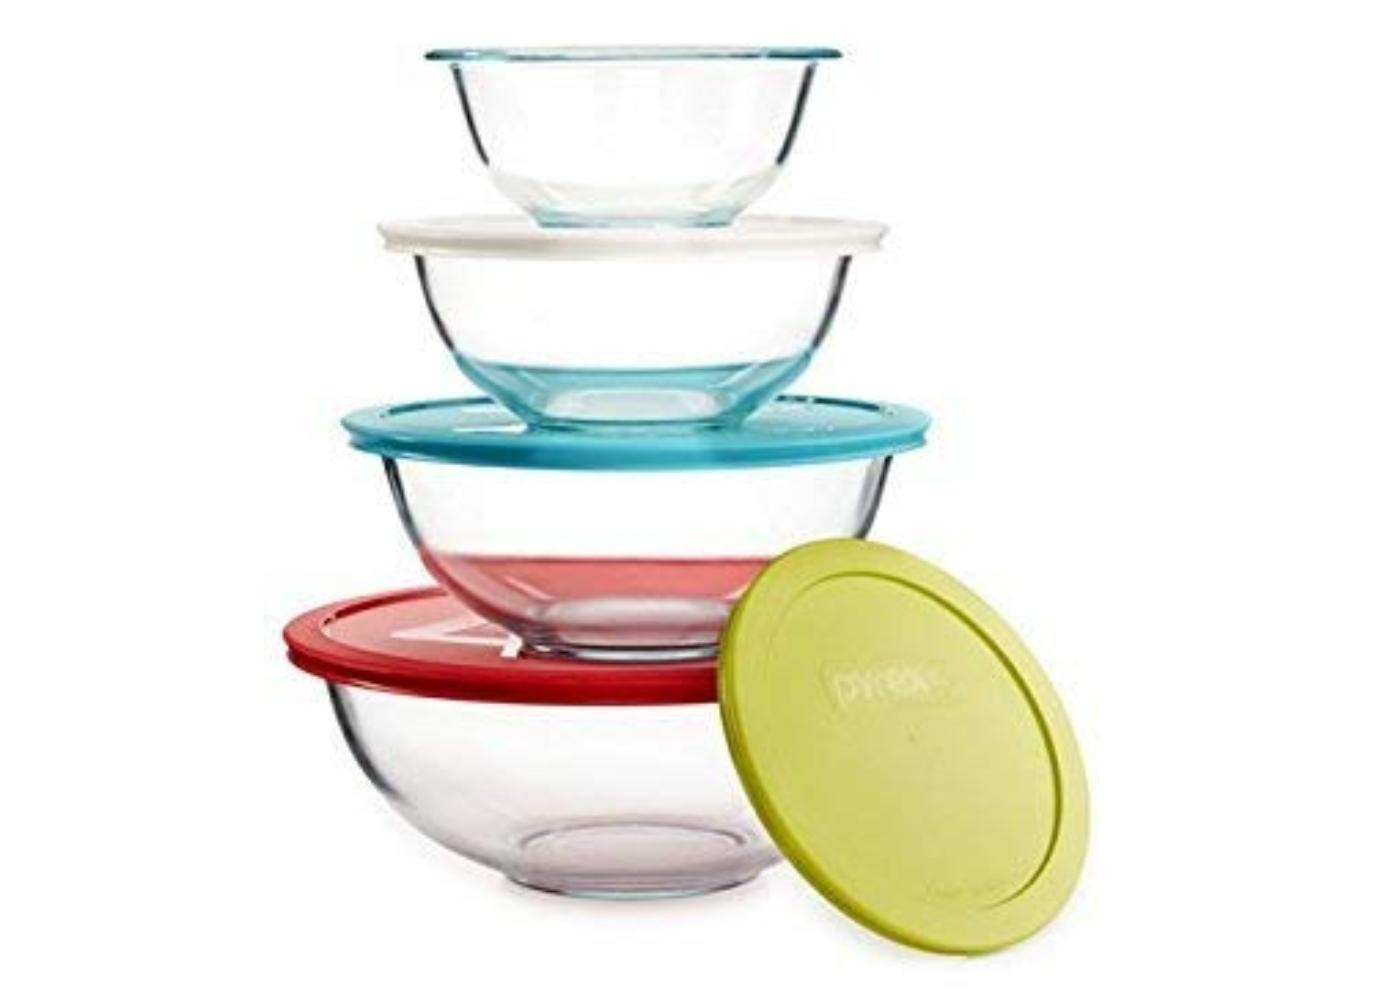 Fitted Bowl Covers Translucent SET OF 50 Variety of Sizes To Fit Every Bowl